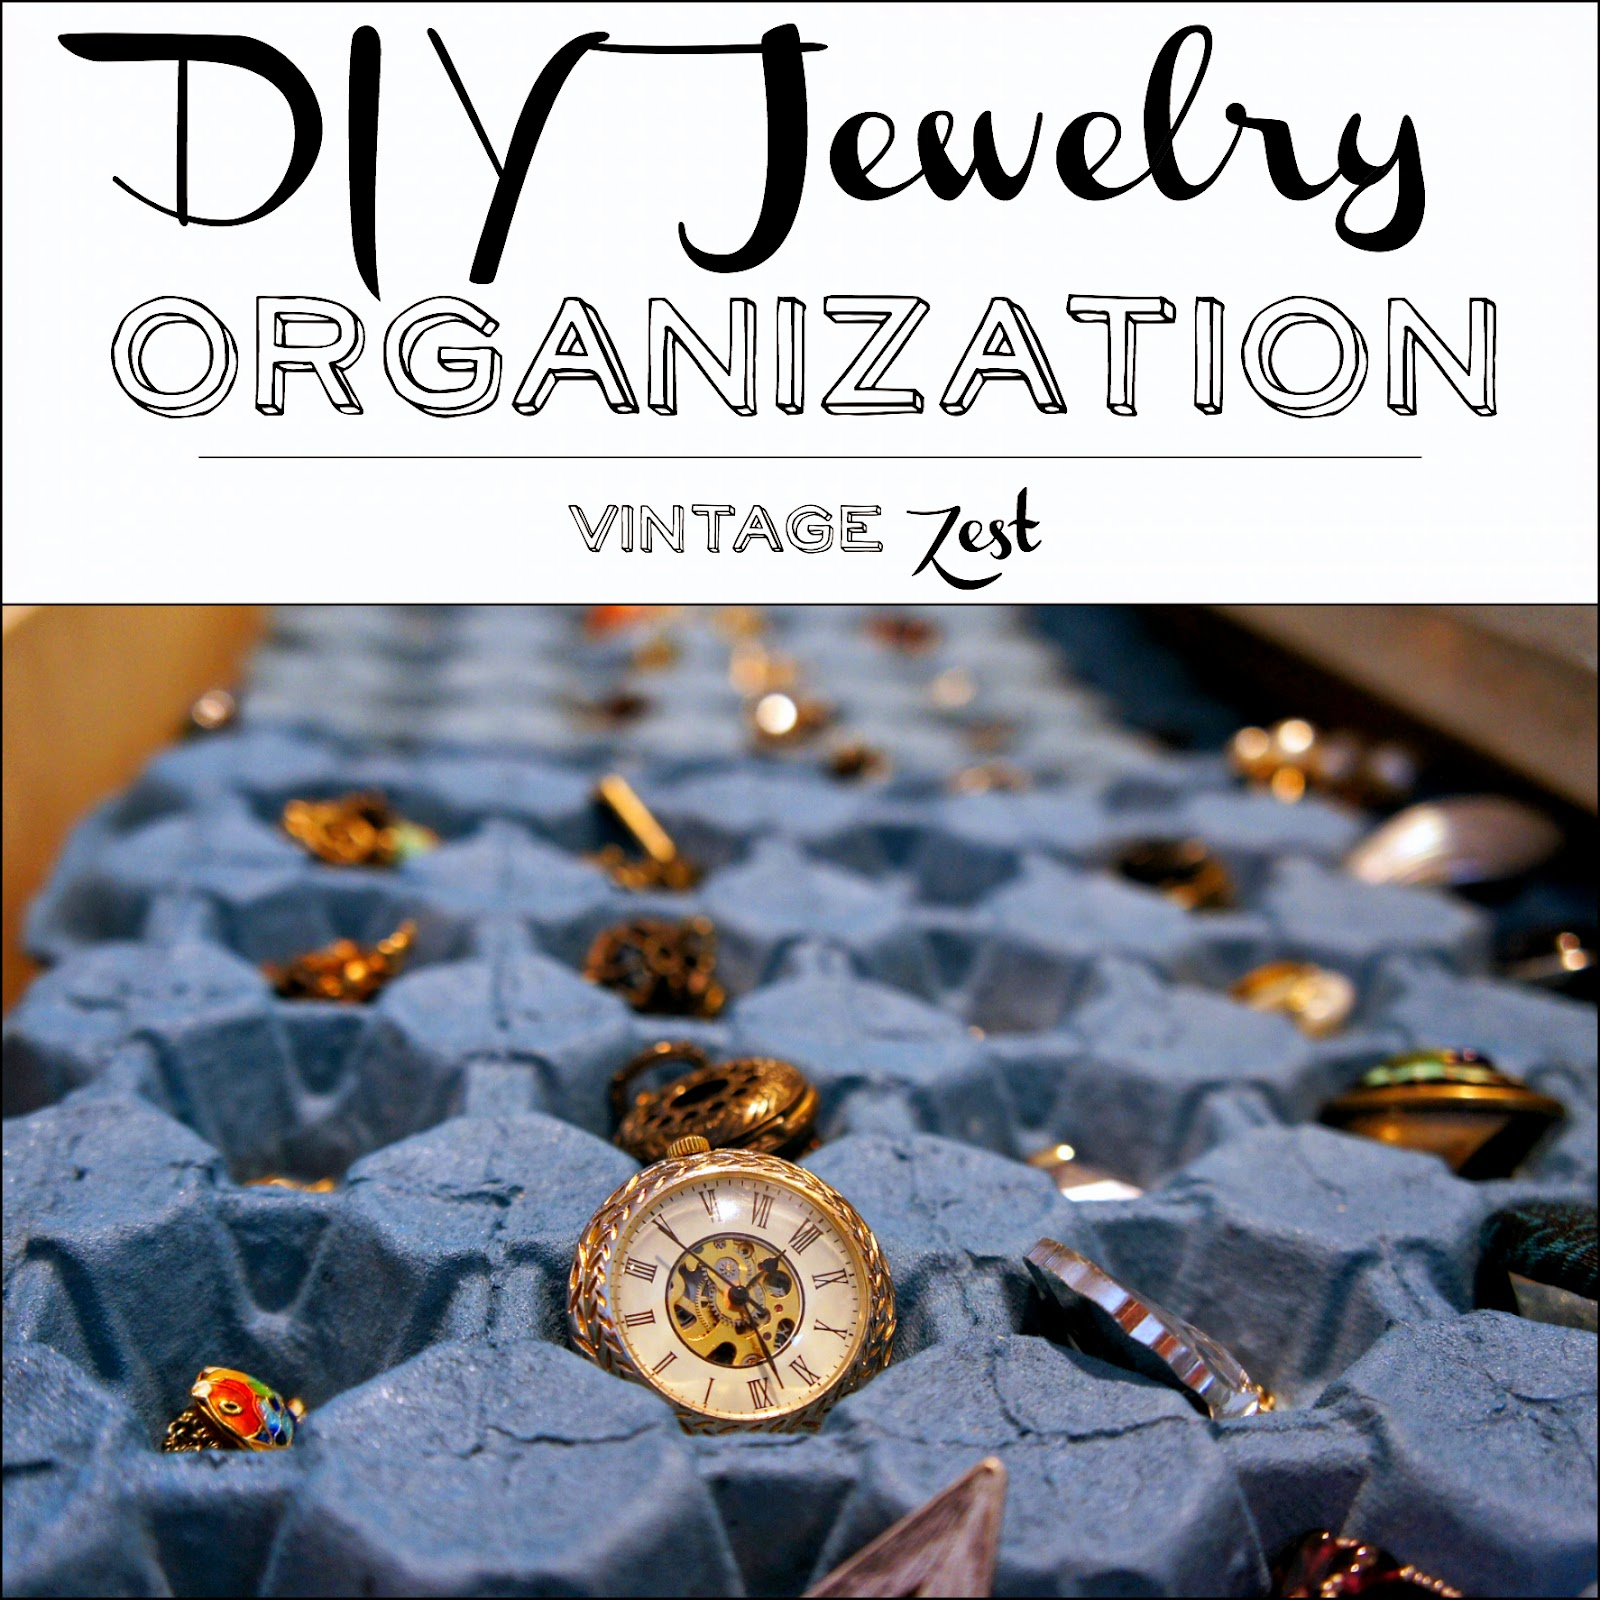 DIY Jewelry Organization on Diane's Vintage Zest!